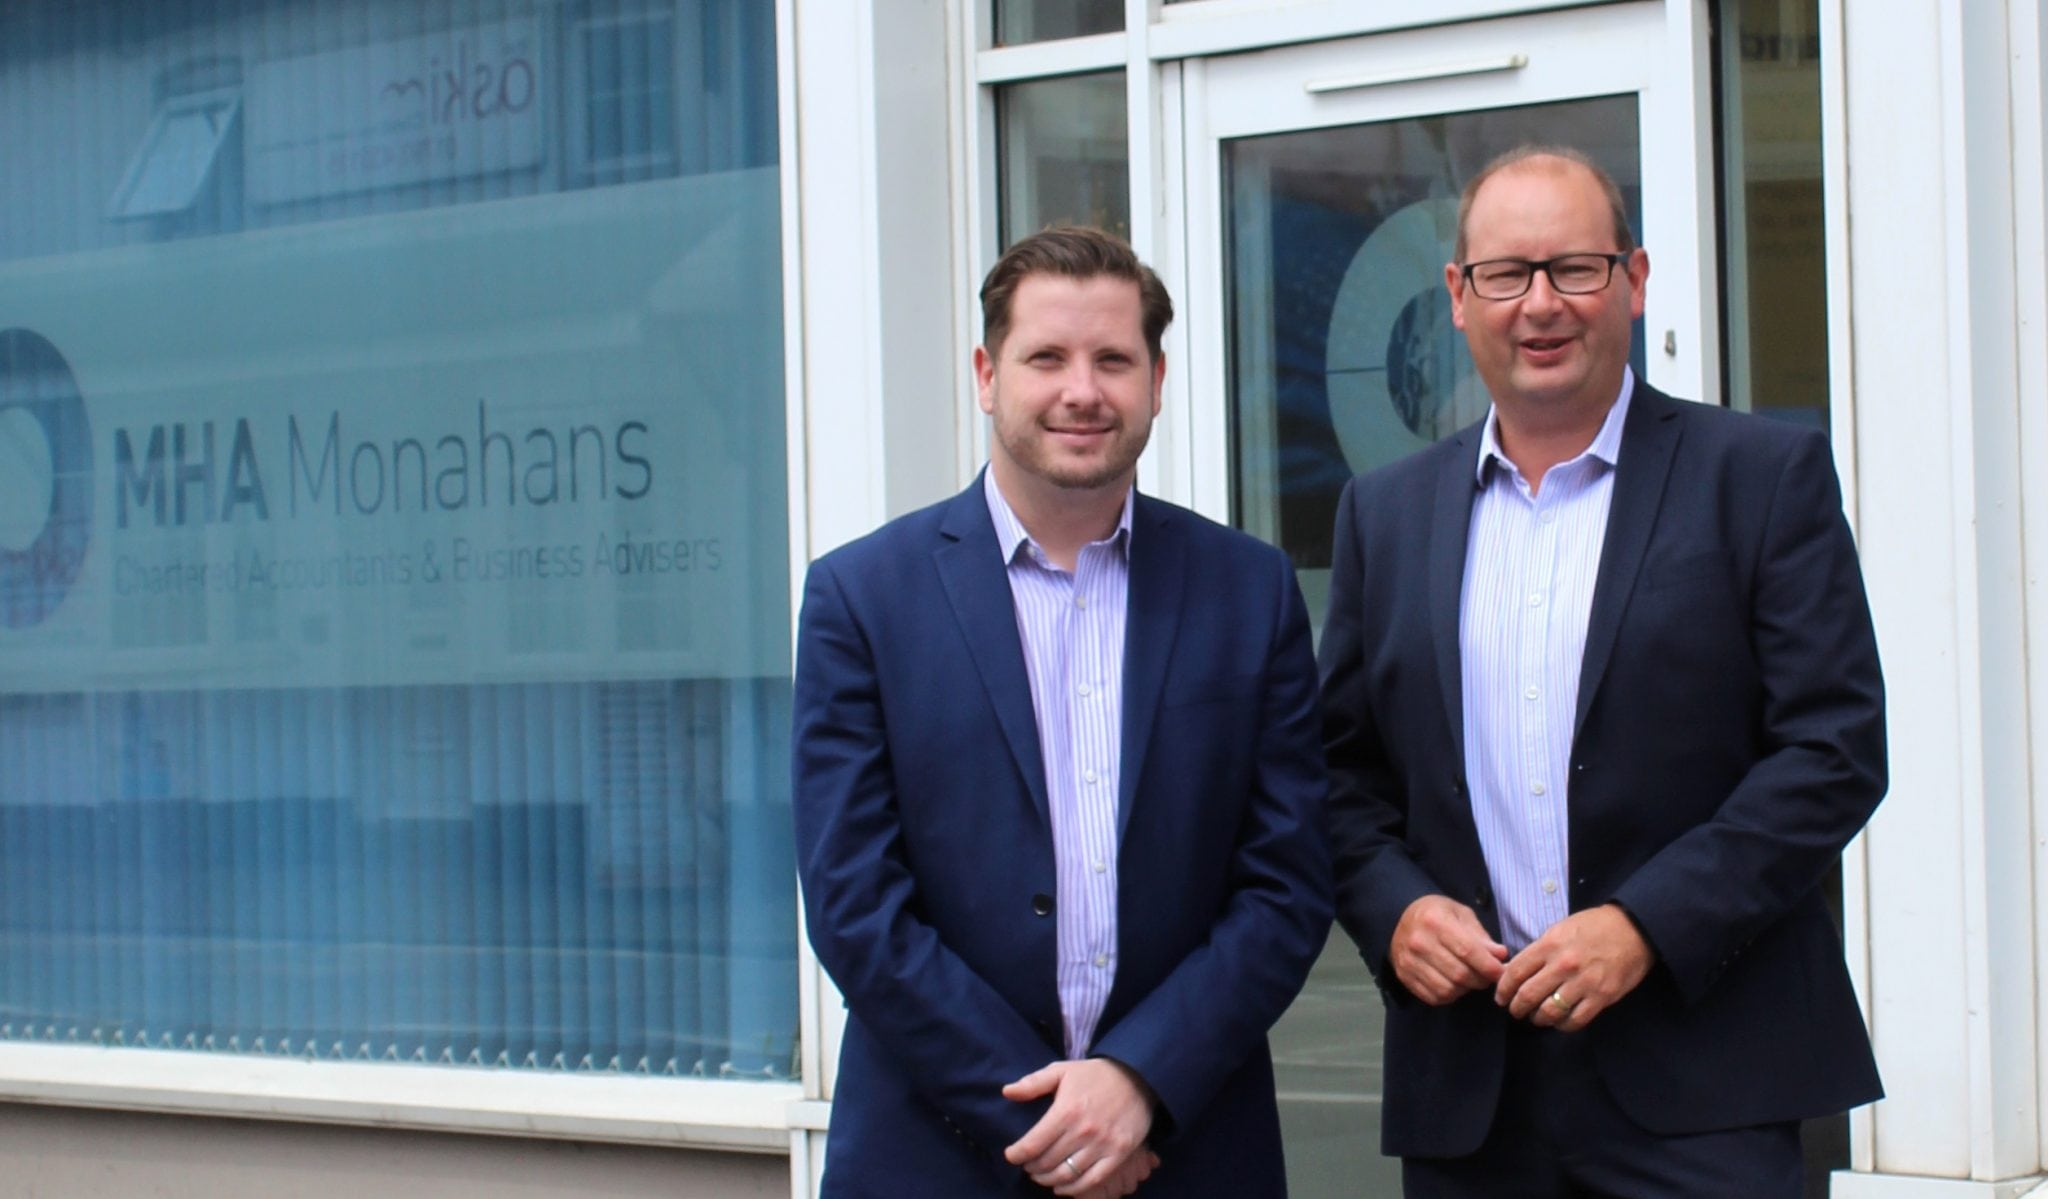 Monahans expands business recovery and insolvency team